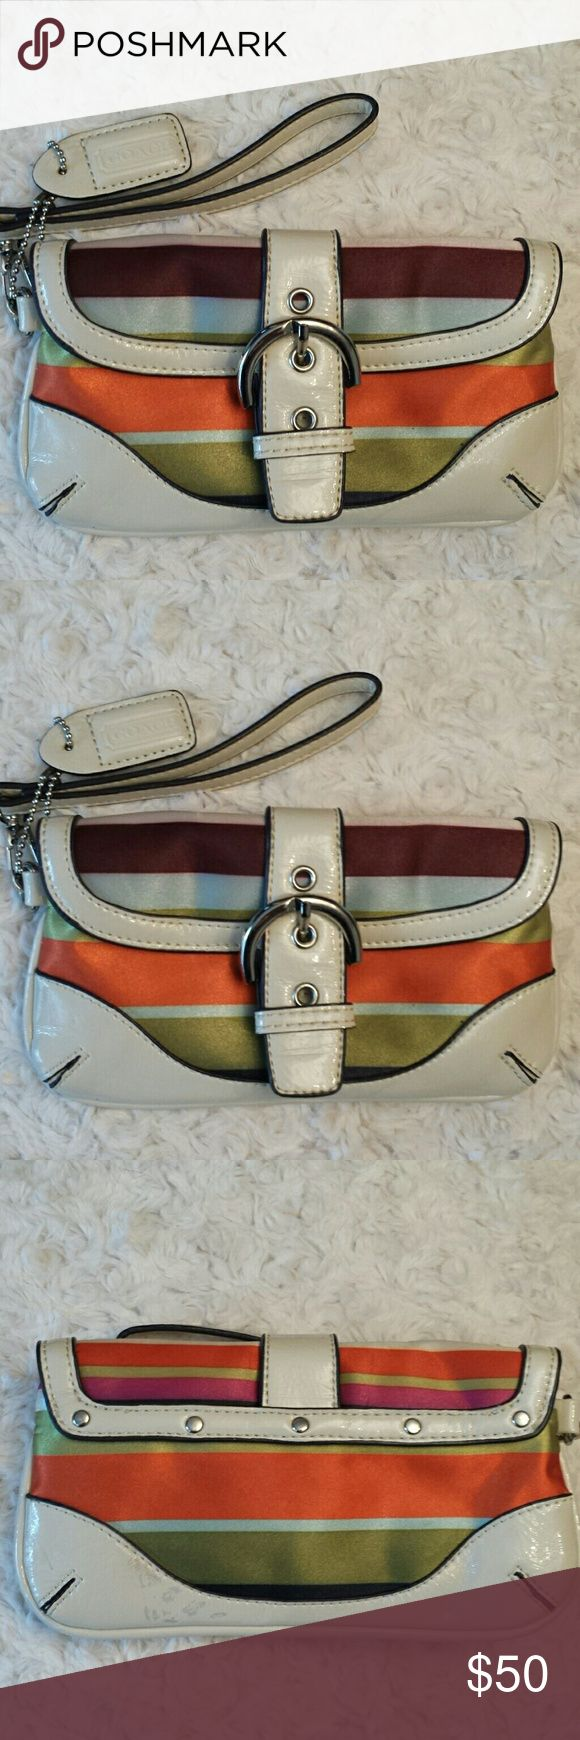 Coach Legacy Satin Stripe Wristlet Coach Legacy Satin Orange, green, and blue Stripe Wristlet, Buckle Snap closure, Zippered Closure inside and mirror and Zippered pocket inside, Patent has some wear spots see pics otherwise good condition Coach Bags Clutches & Wristlets